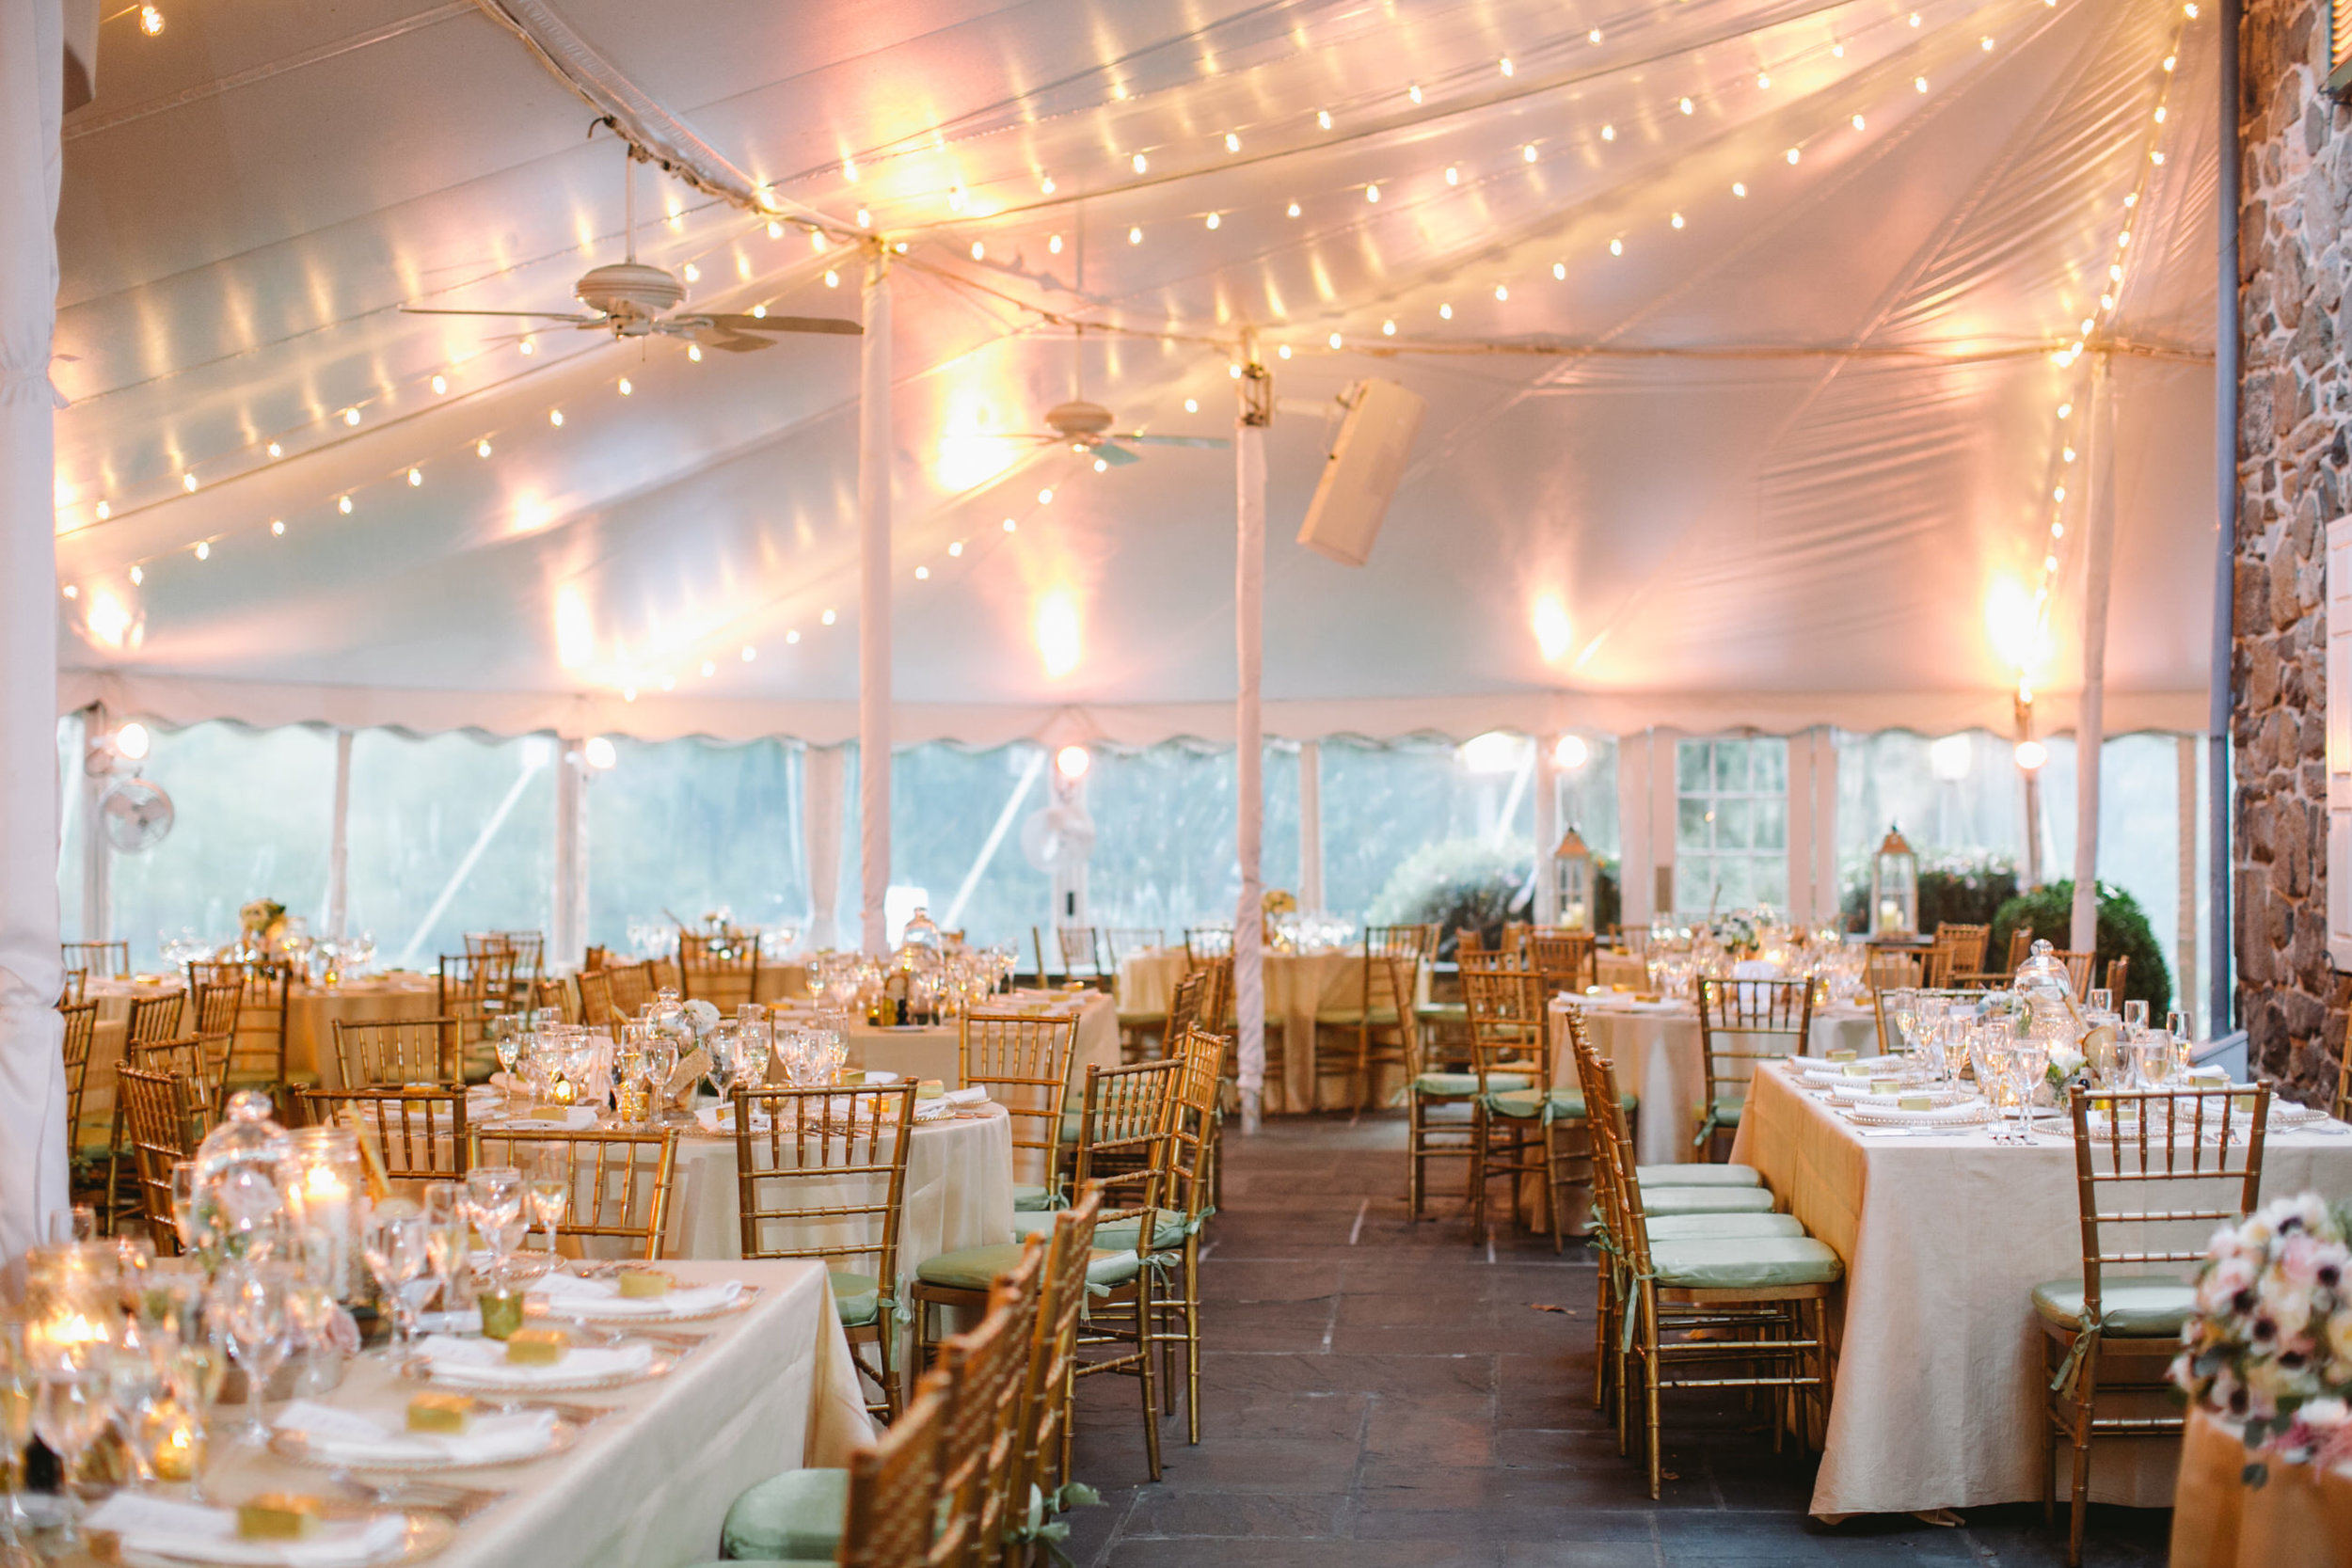 26 Appleford Estate Wedding Tent Reception Market Lights.jpg